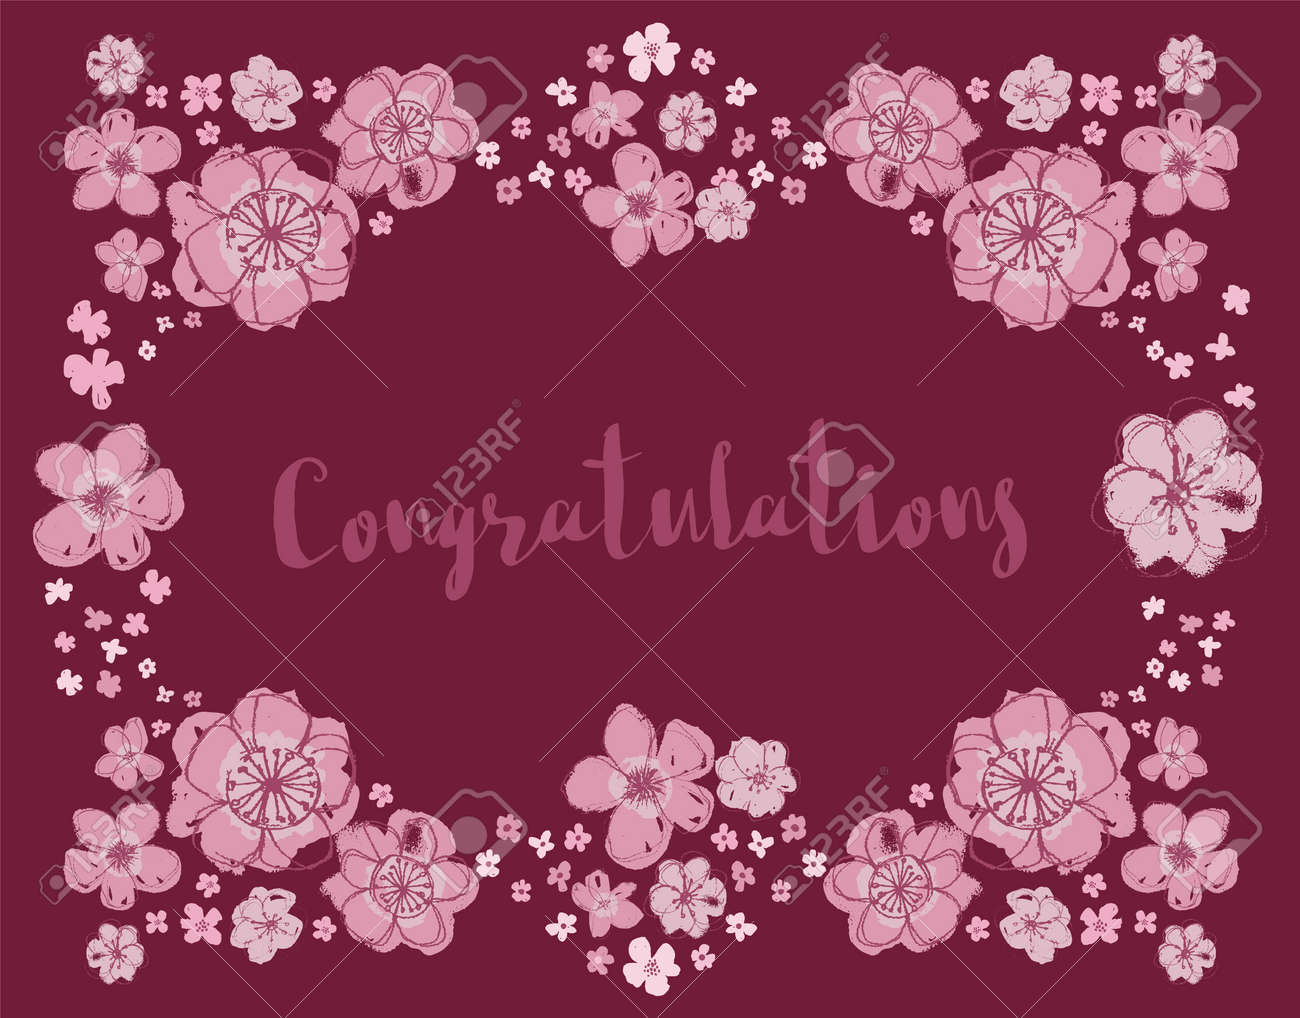 Congratulations vector pink and dark maroon editable floral wreath on a deep burgundy background. - 124088856